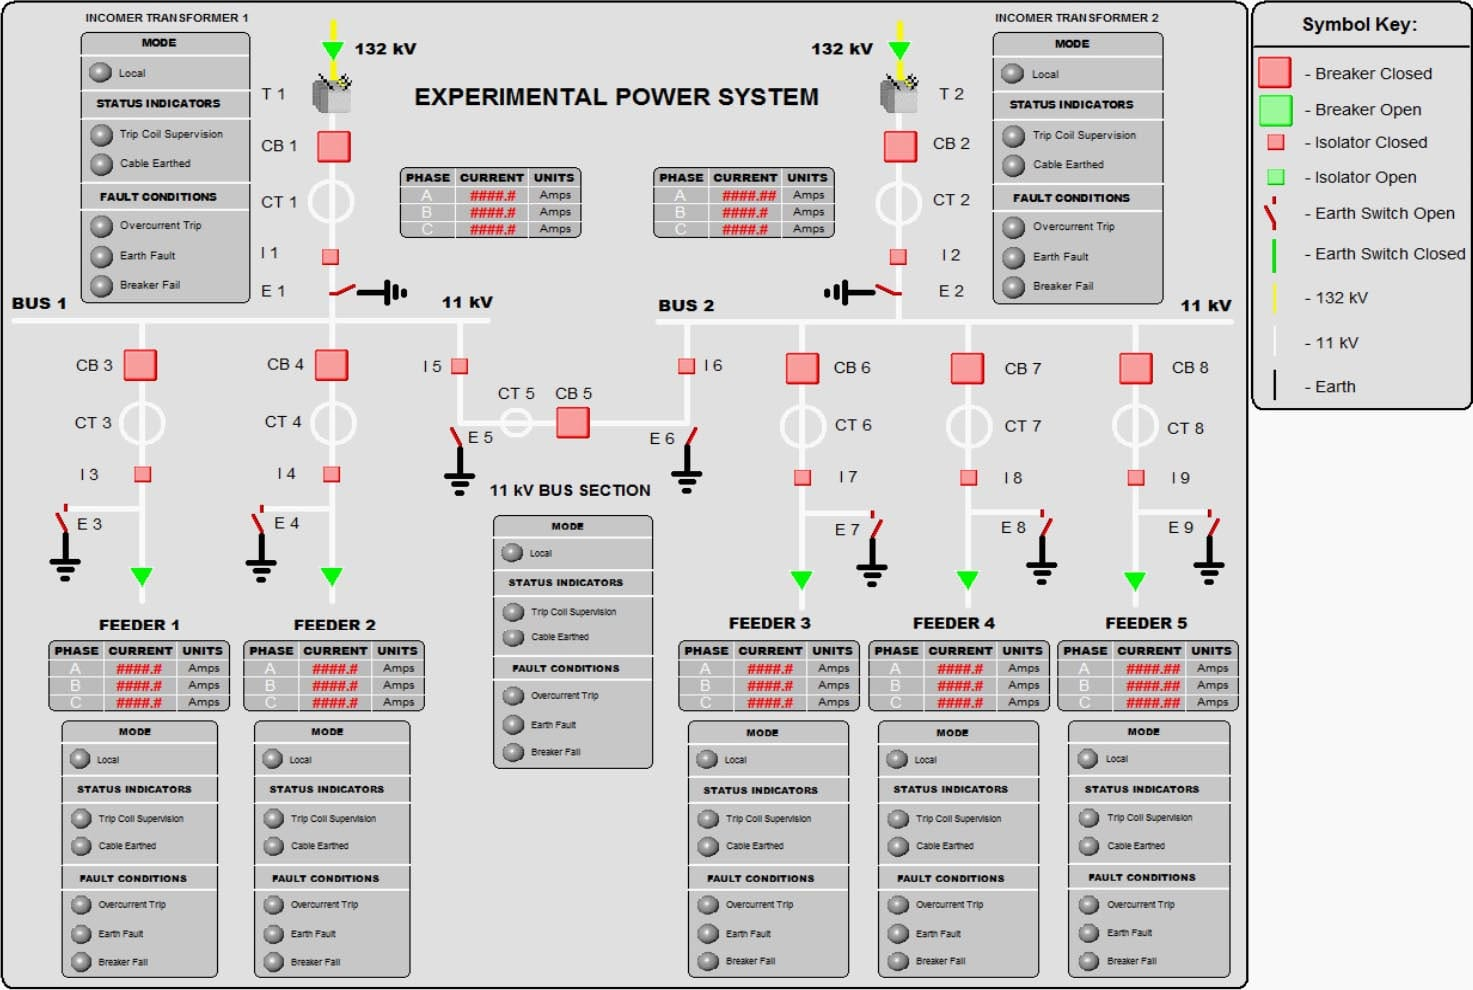 Substation SCADA model